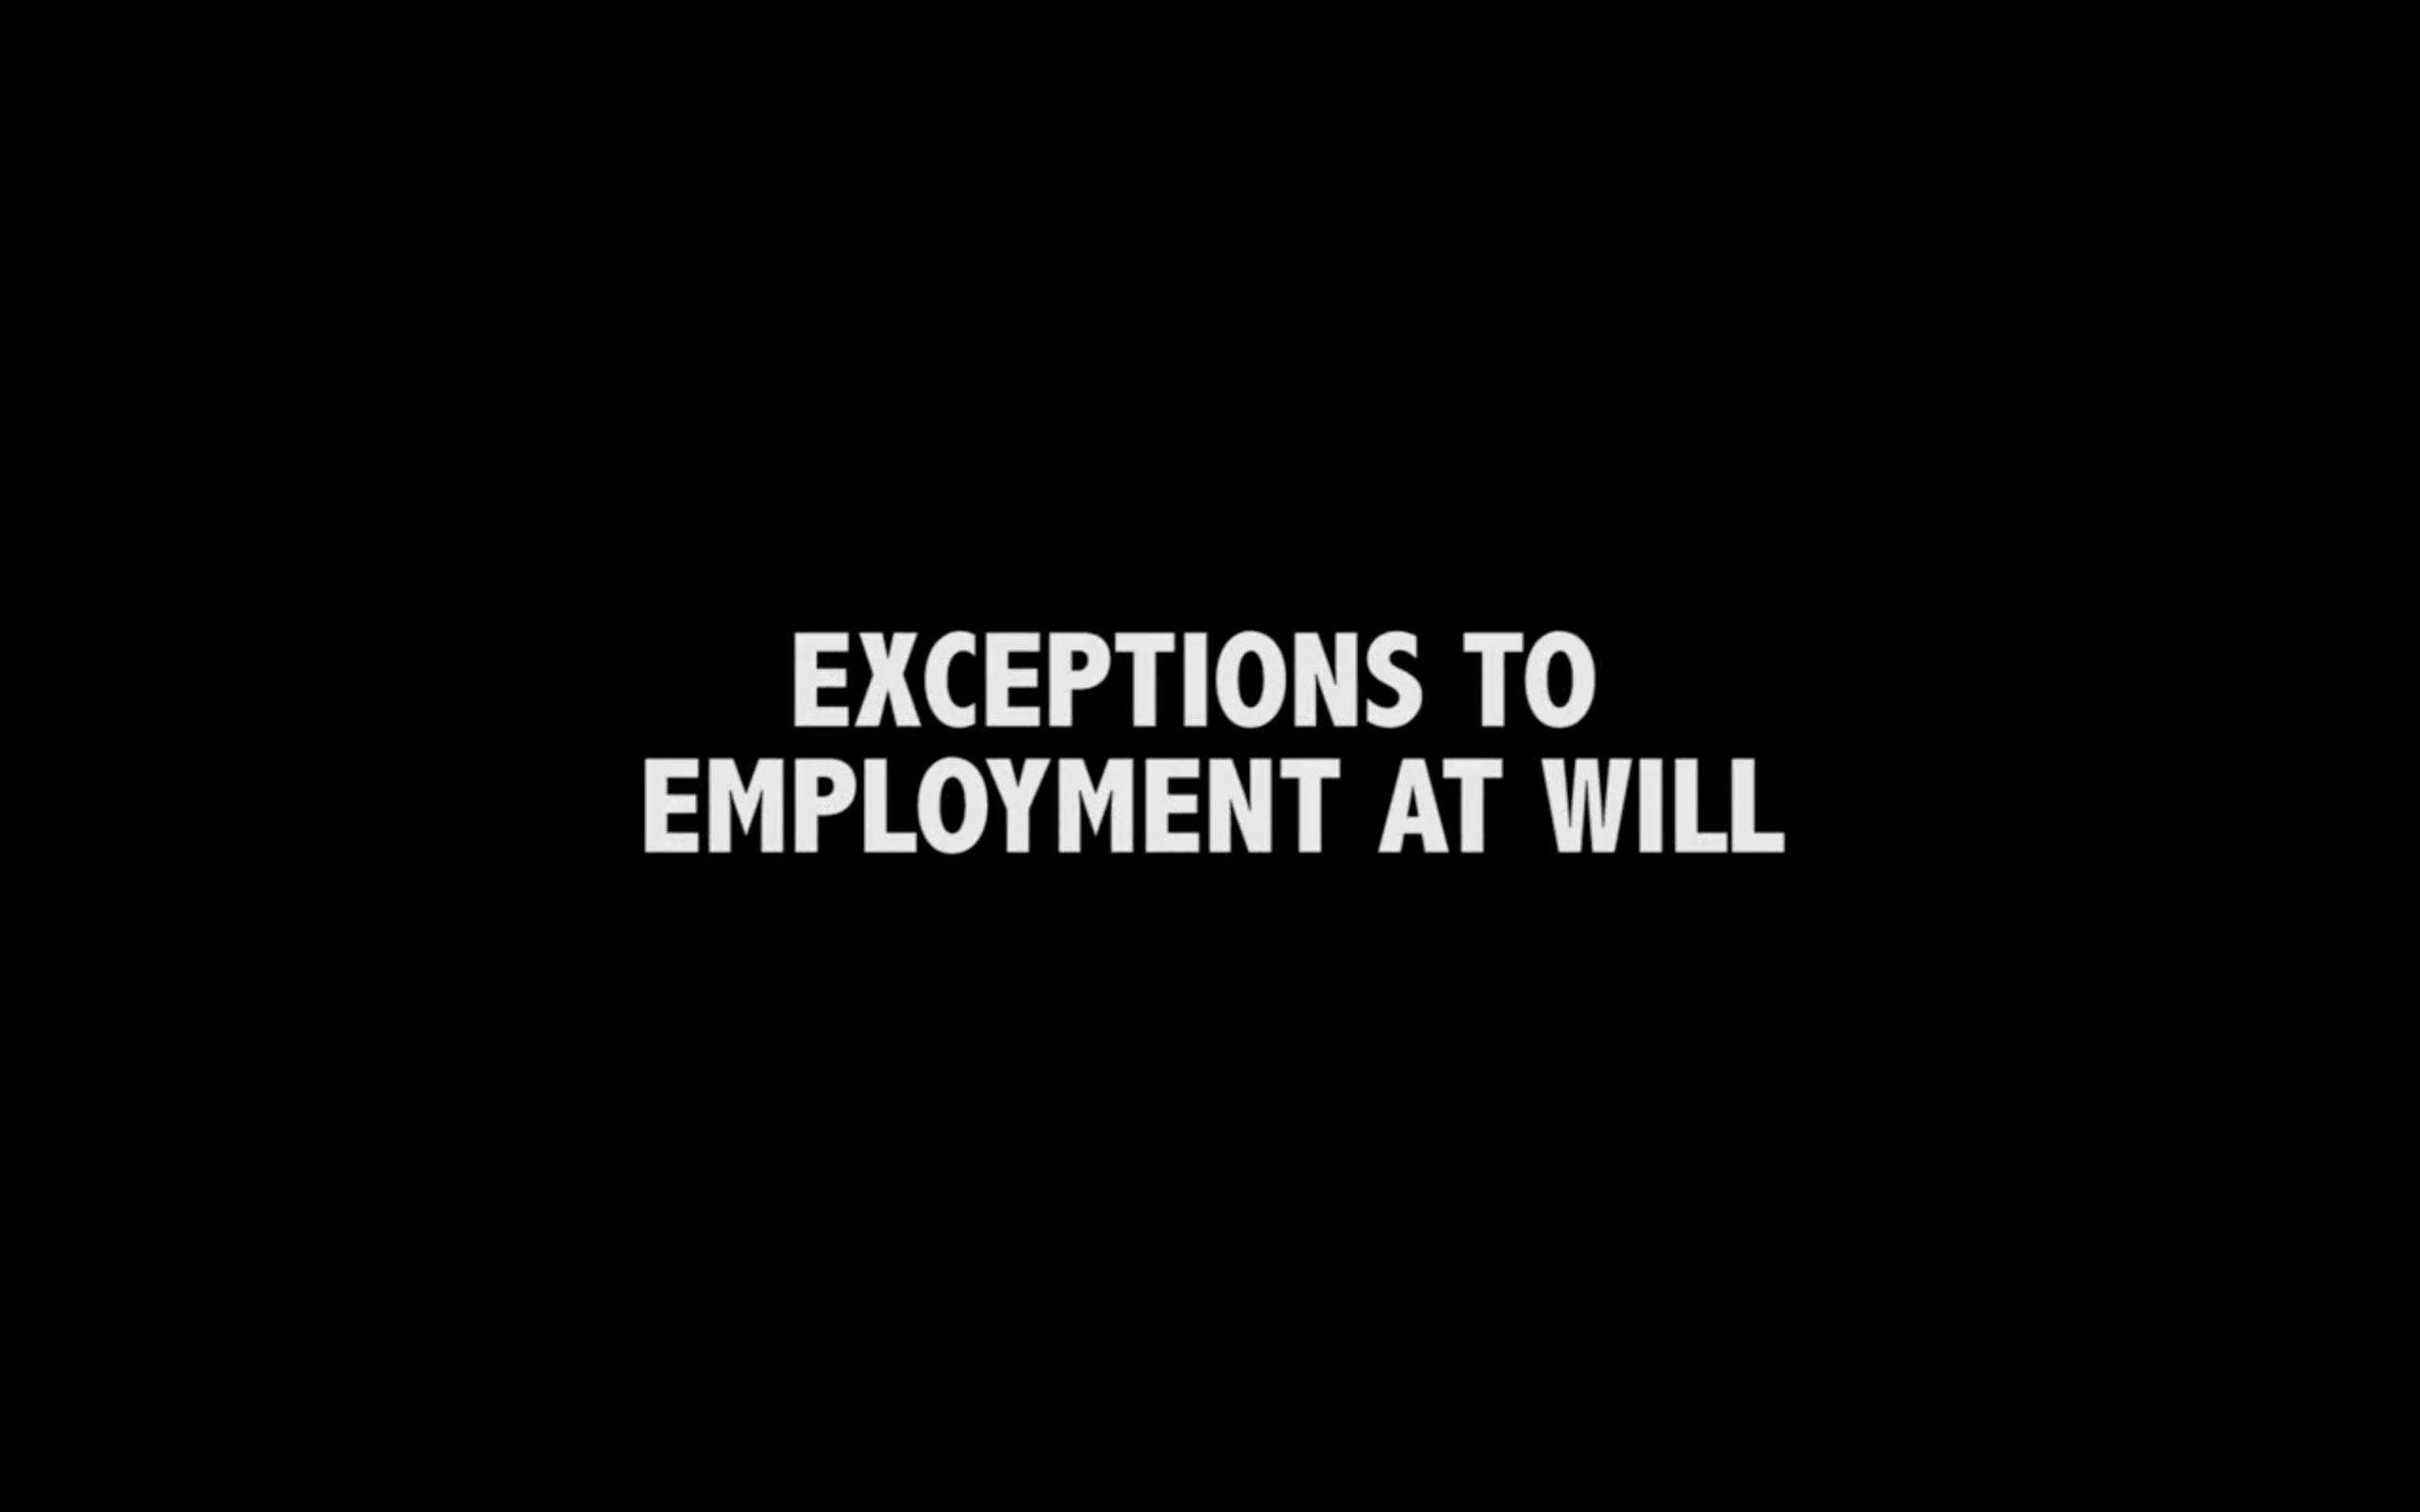 Exceptions to Employment at Will